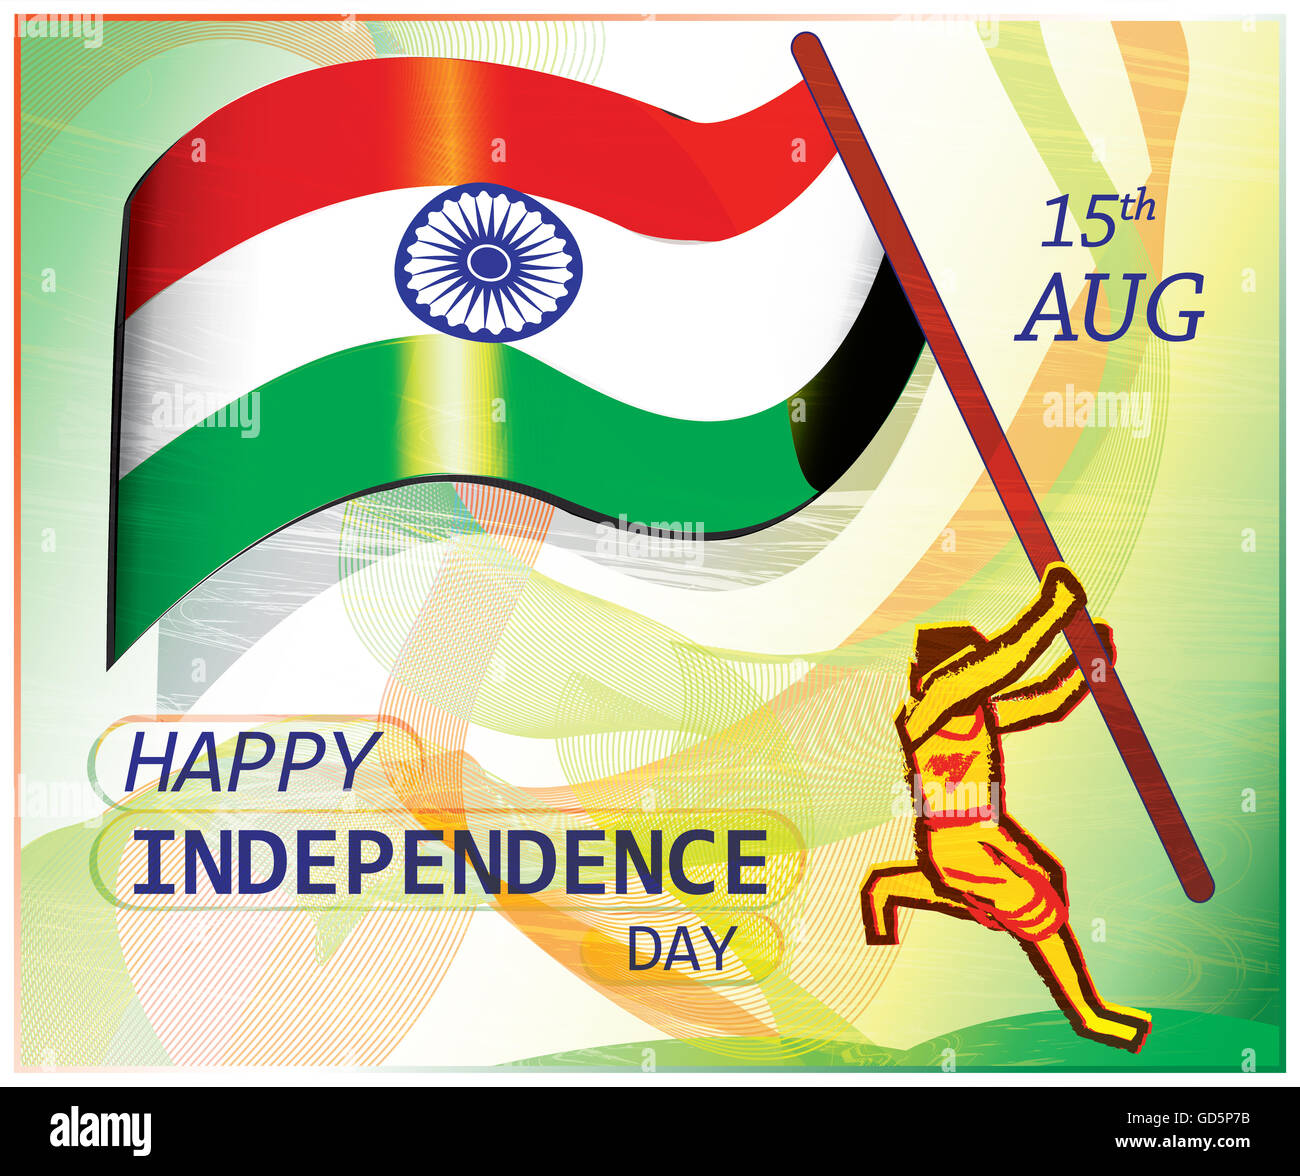 Poster on Indian independence day.A patriot jumps to hoist the flag.Colorful artistic presentation of patriotism. - Stock Image